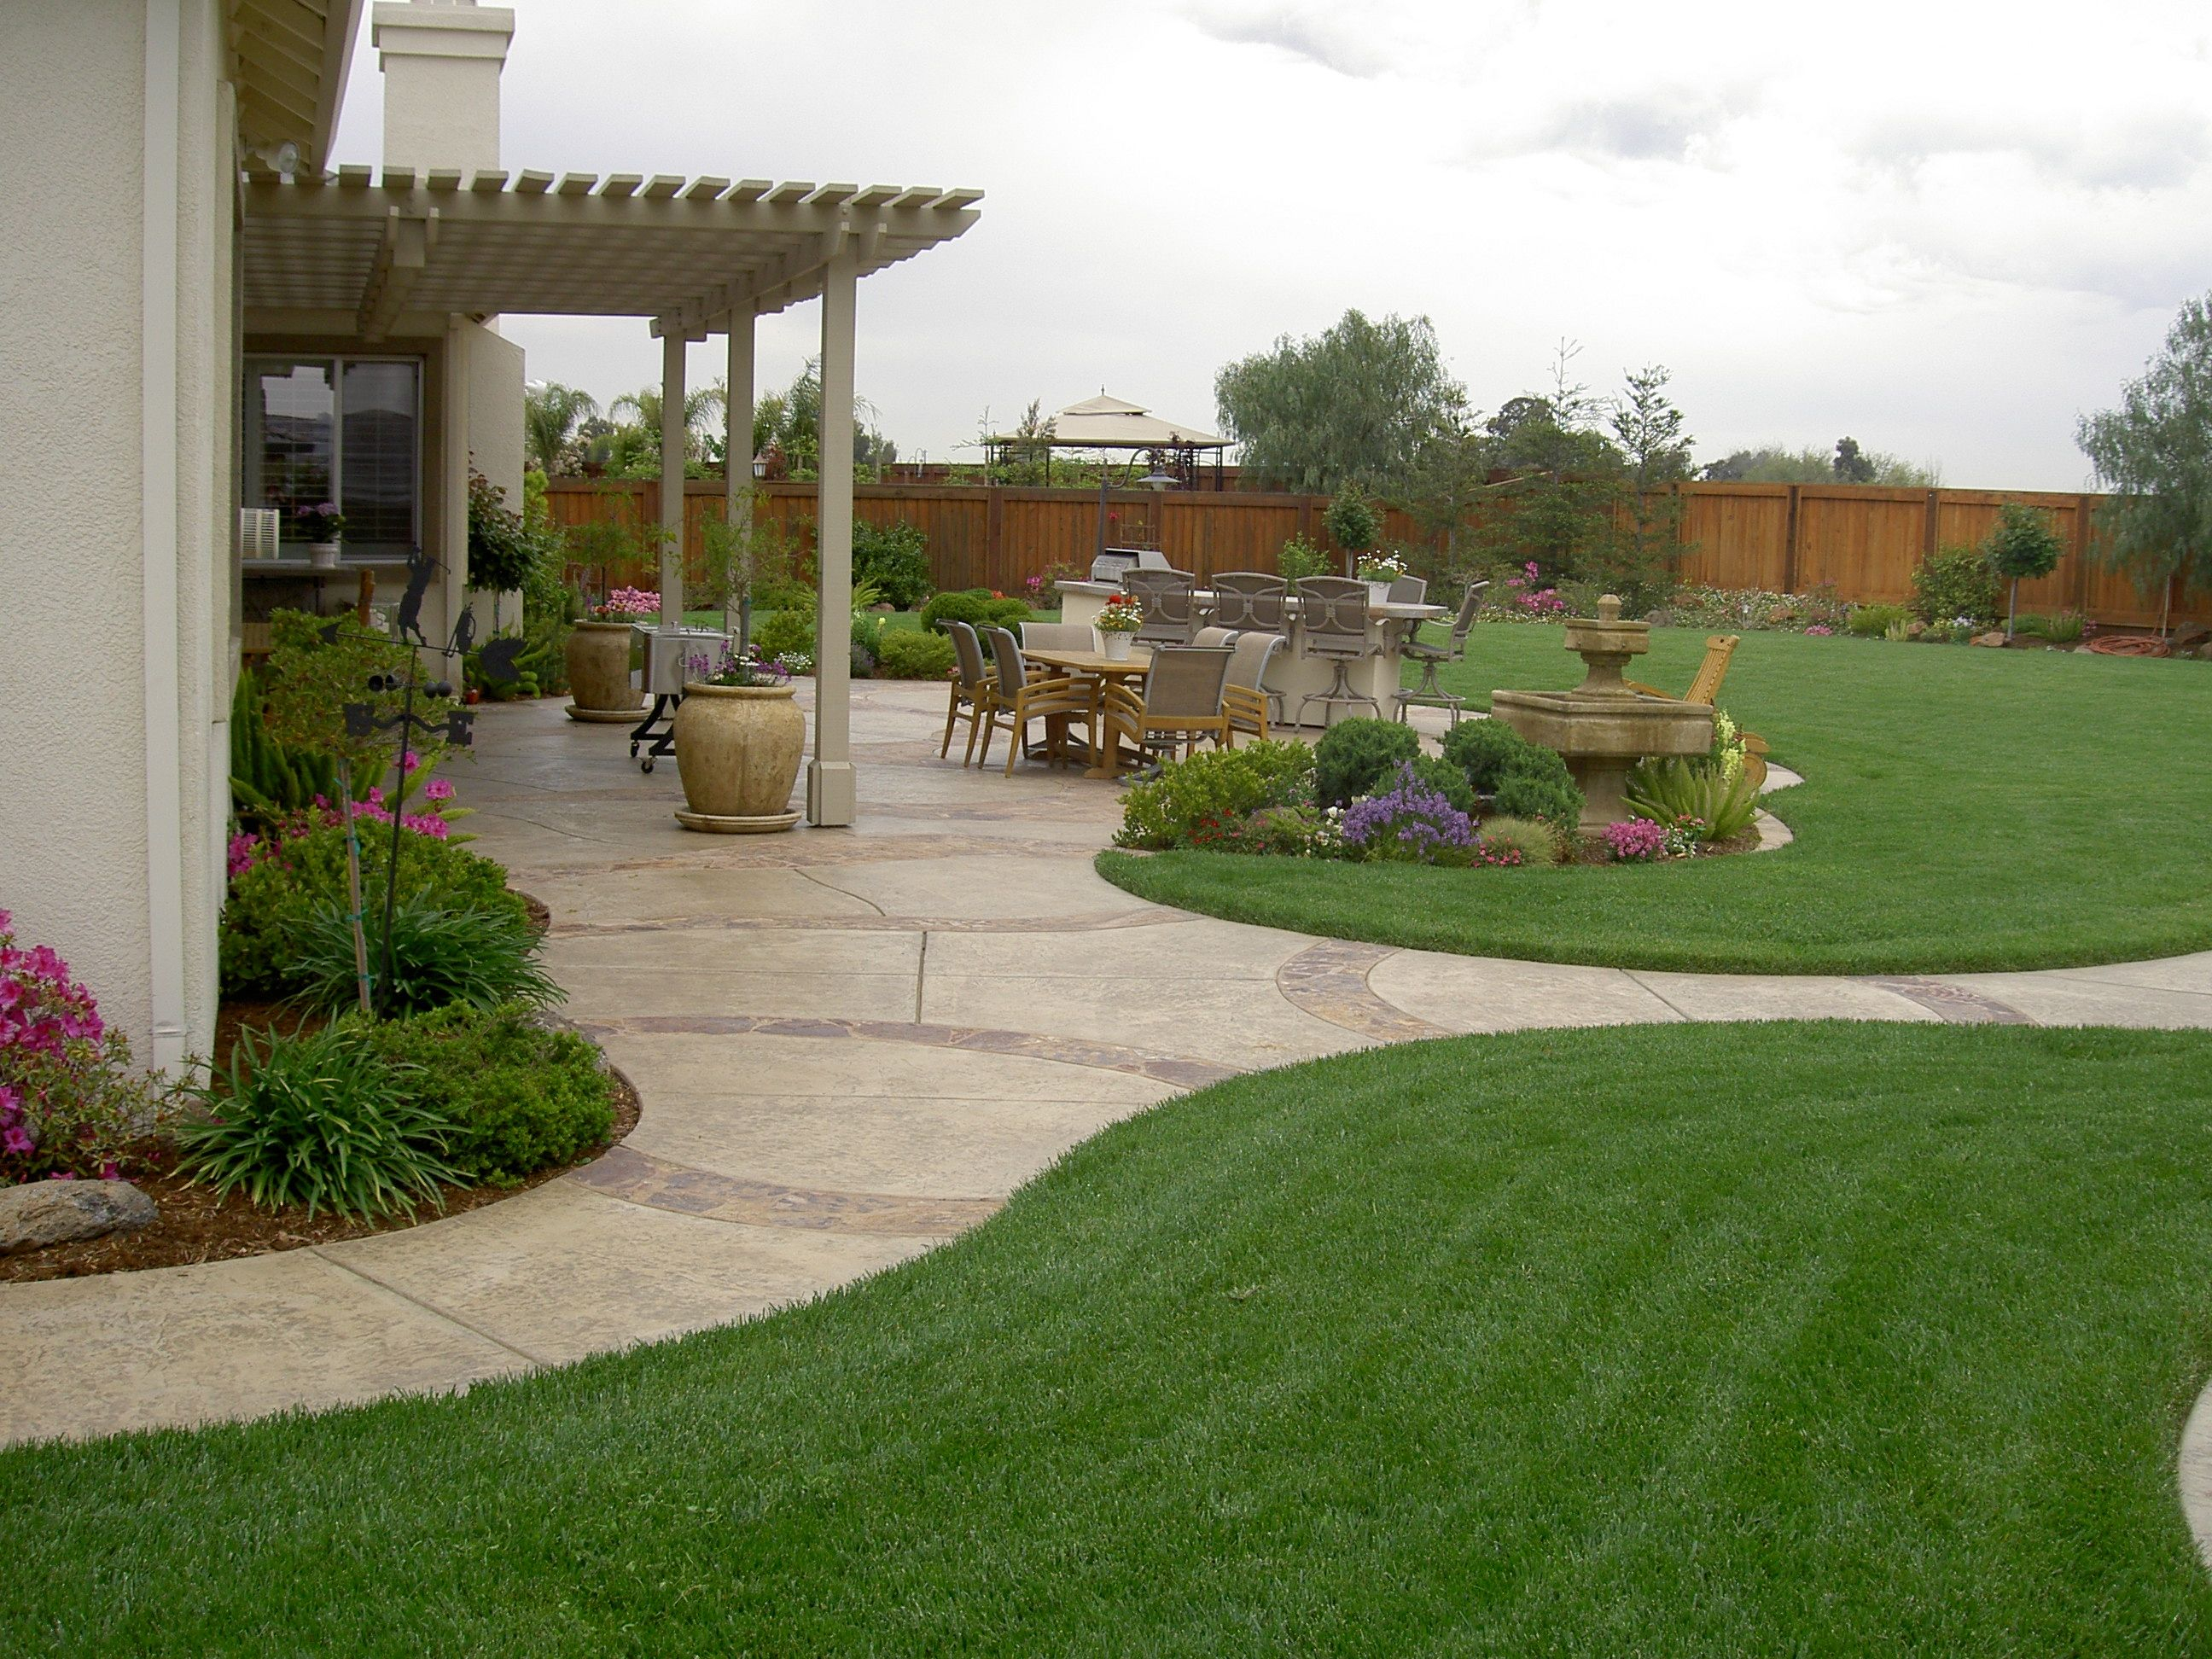 20 Awesome Landscaping Ideas For Your Backyard Gardens throughout Backyard Design Landscaping